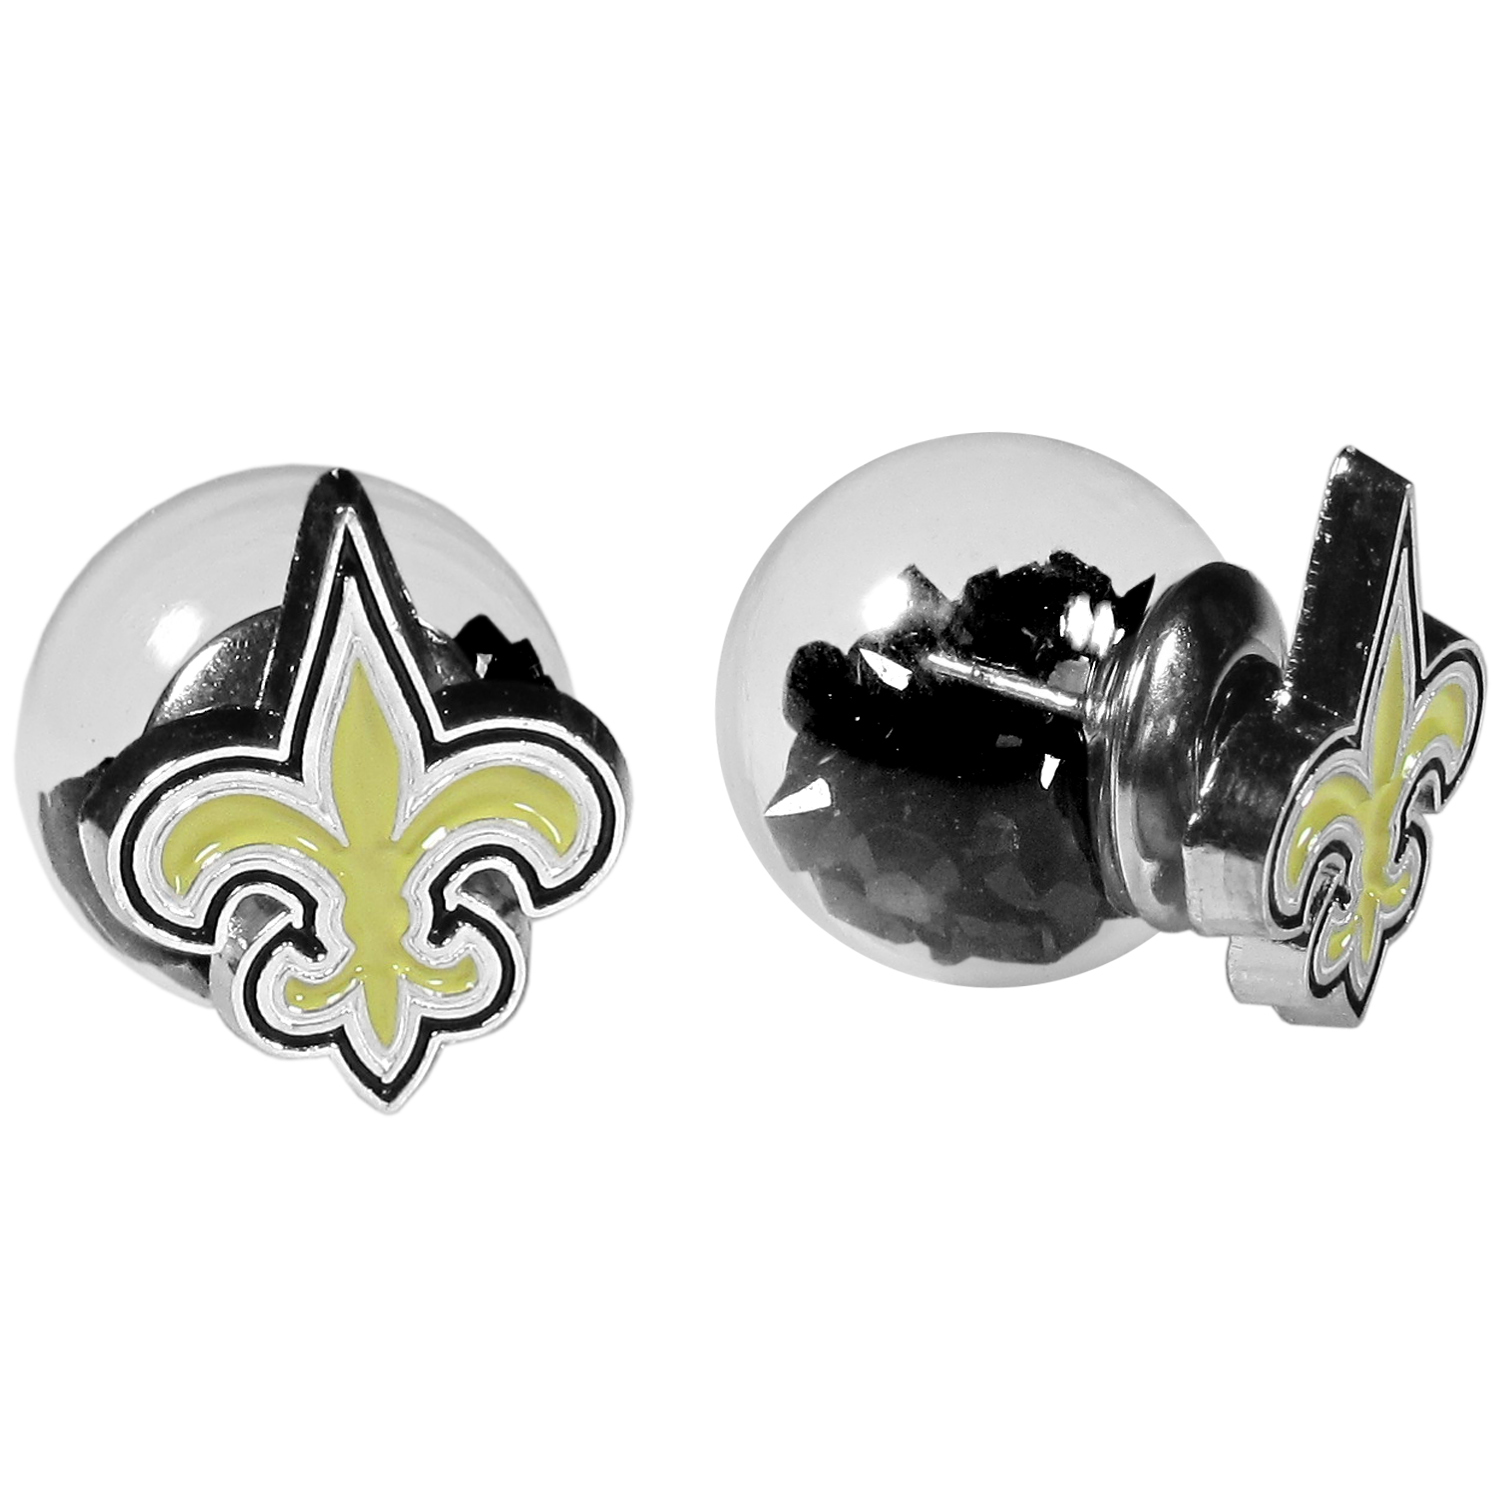 New Orleans Saints Front/Back Earrings - Get in on one of the most popular trends in jewelry, front and back earrings! This must-have style is all of over the red carpets and we taken this contemporary look and paired it with your love of the New Orleans Saints! The front of the earring is a sporty team logo and the back of these eye-catching earrings is a glass ball filled with colored crystal beads. This piece is perfect for a fashion-forward fan, with bold taste and trend-setting style.